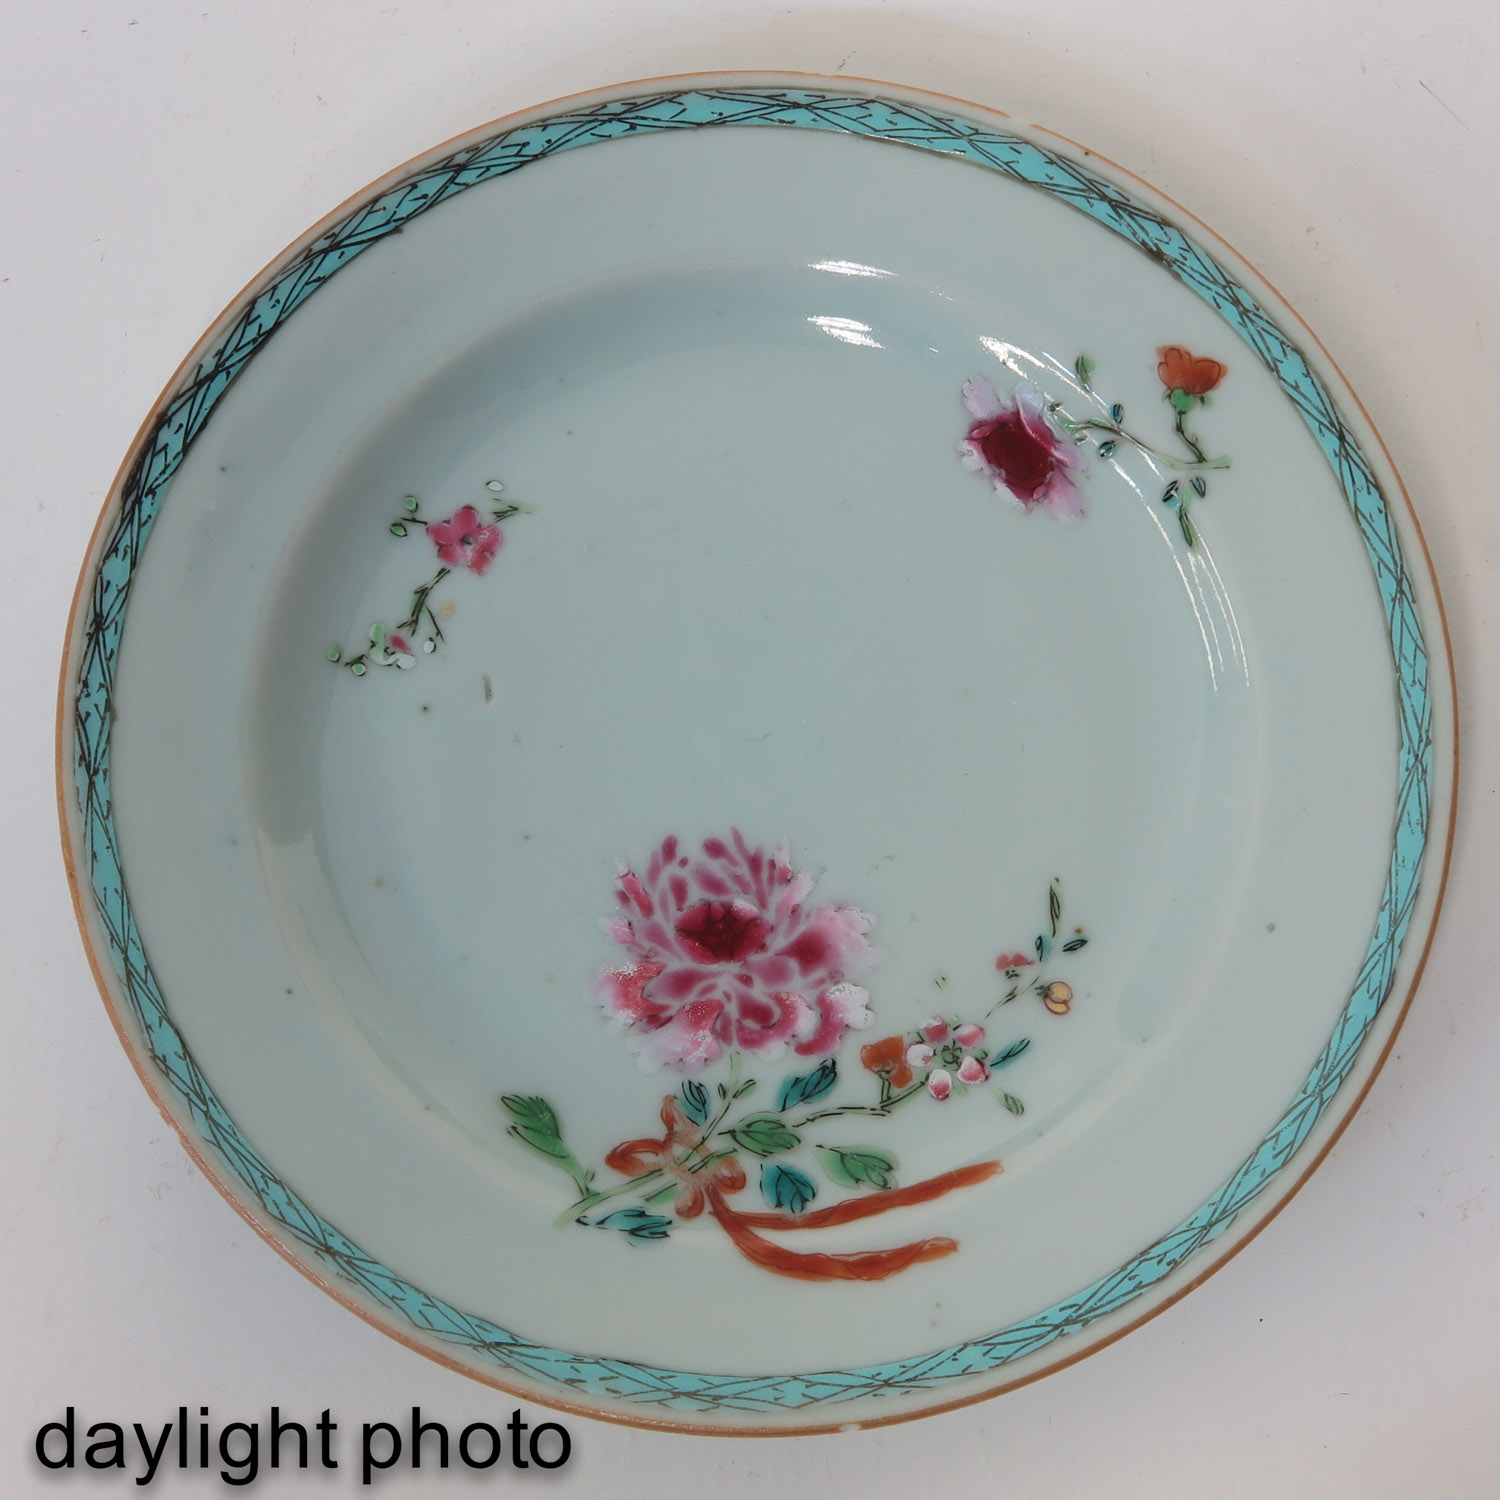 A Series of 5 Famille Rose Plates - Image 7 of 9